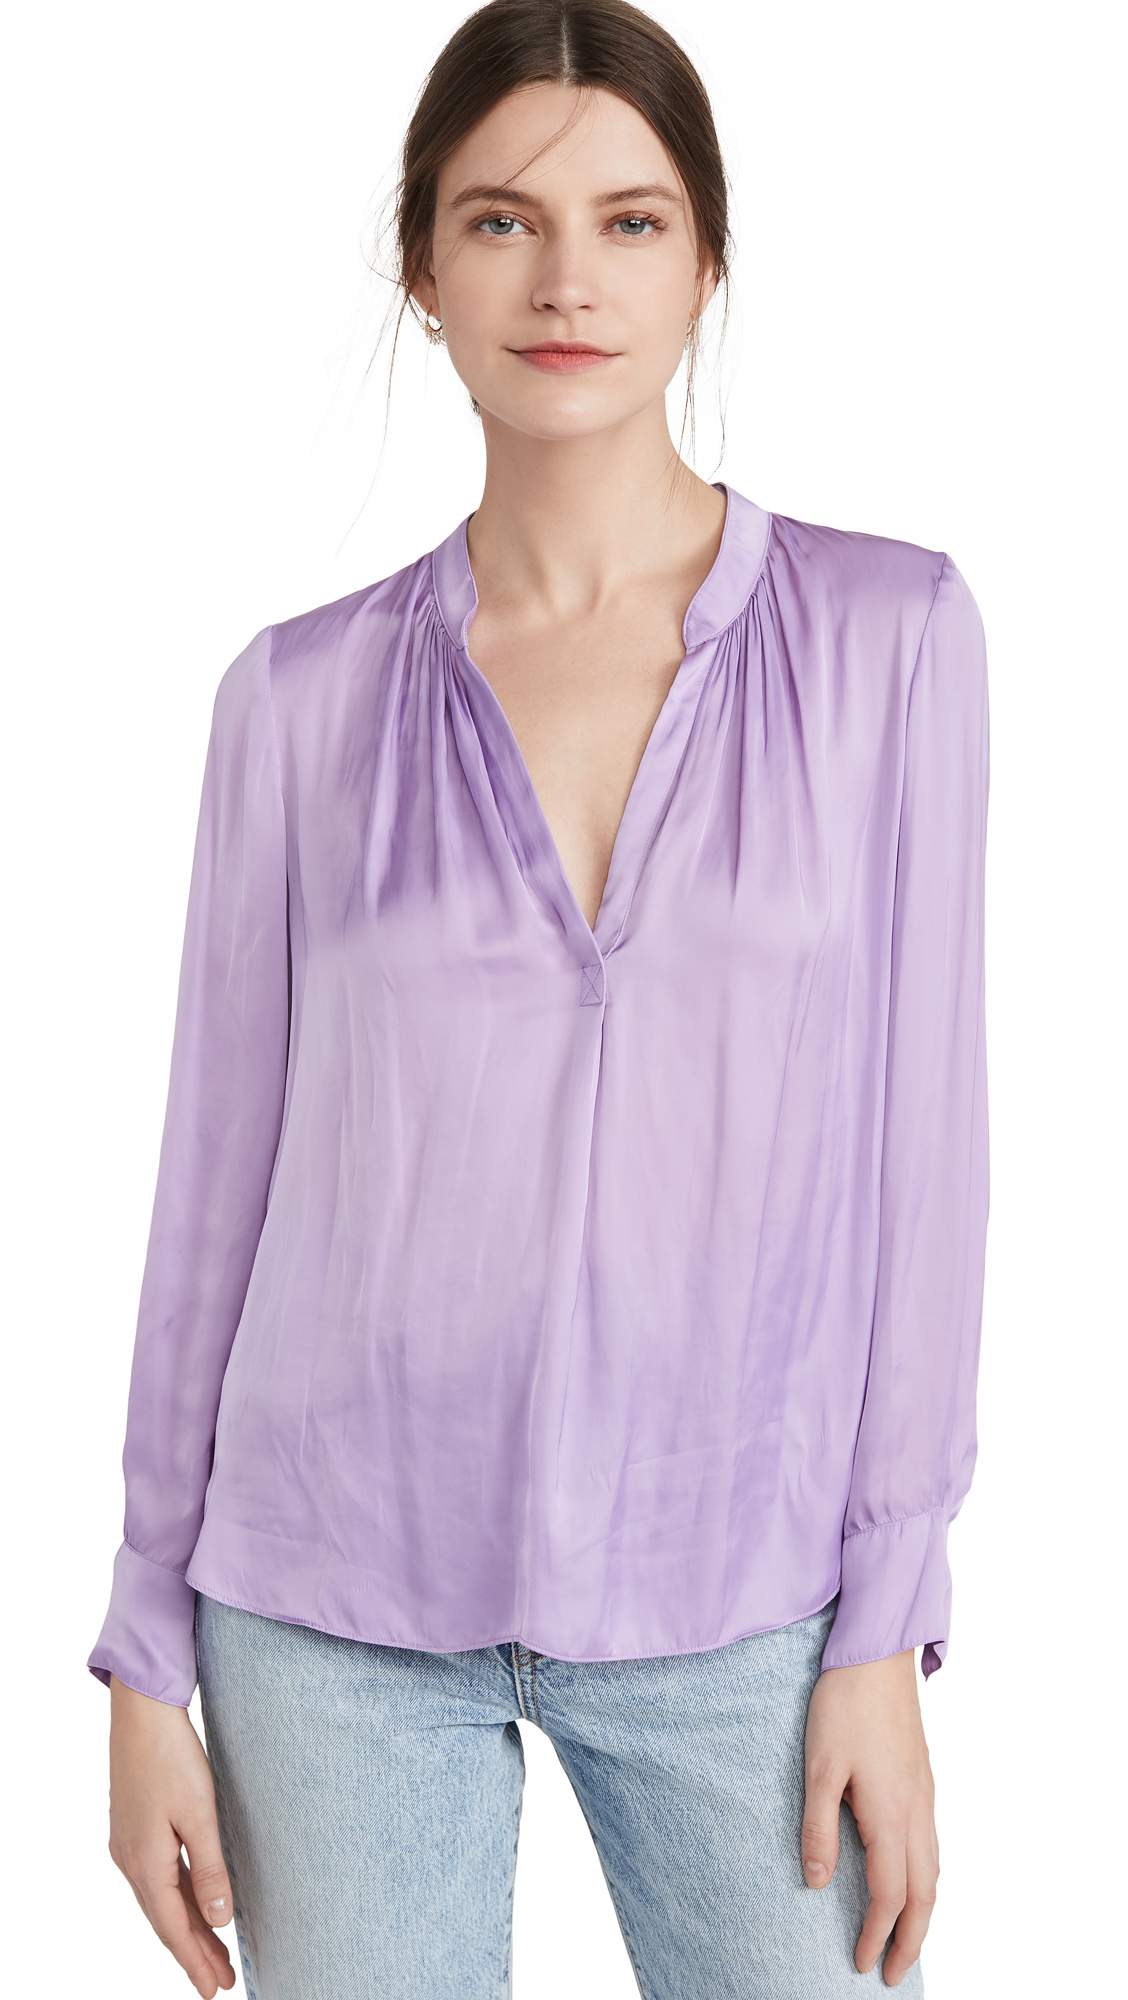 Zadig & Voltaire Tink Satin Tunic - 30% Off Sale